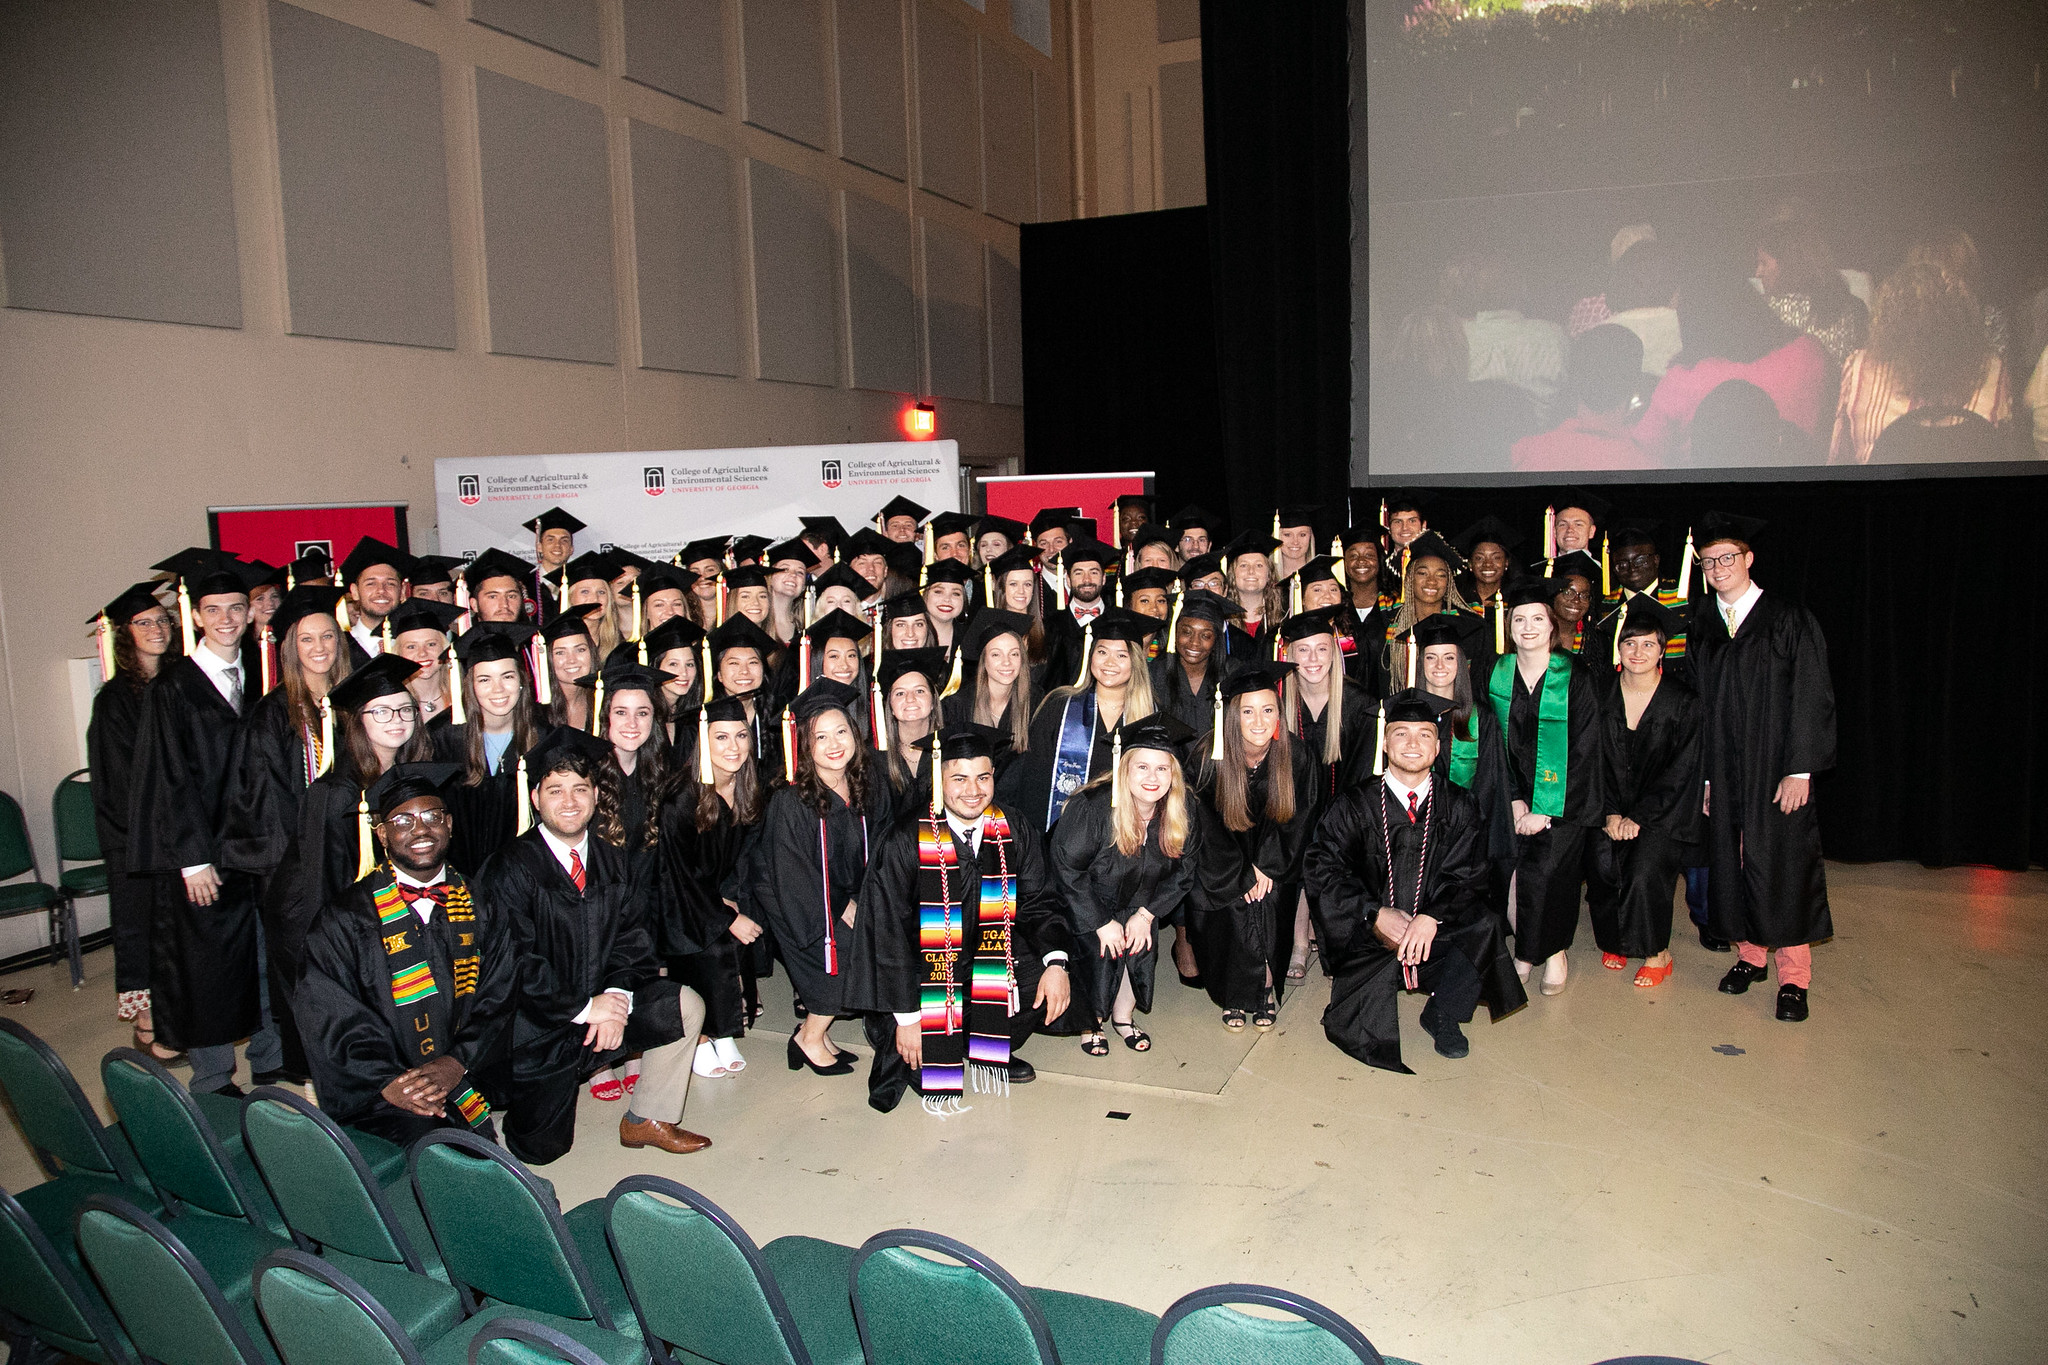 CAES Convocation